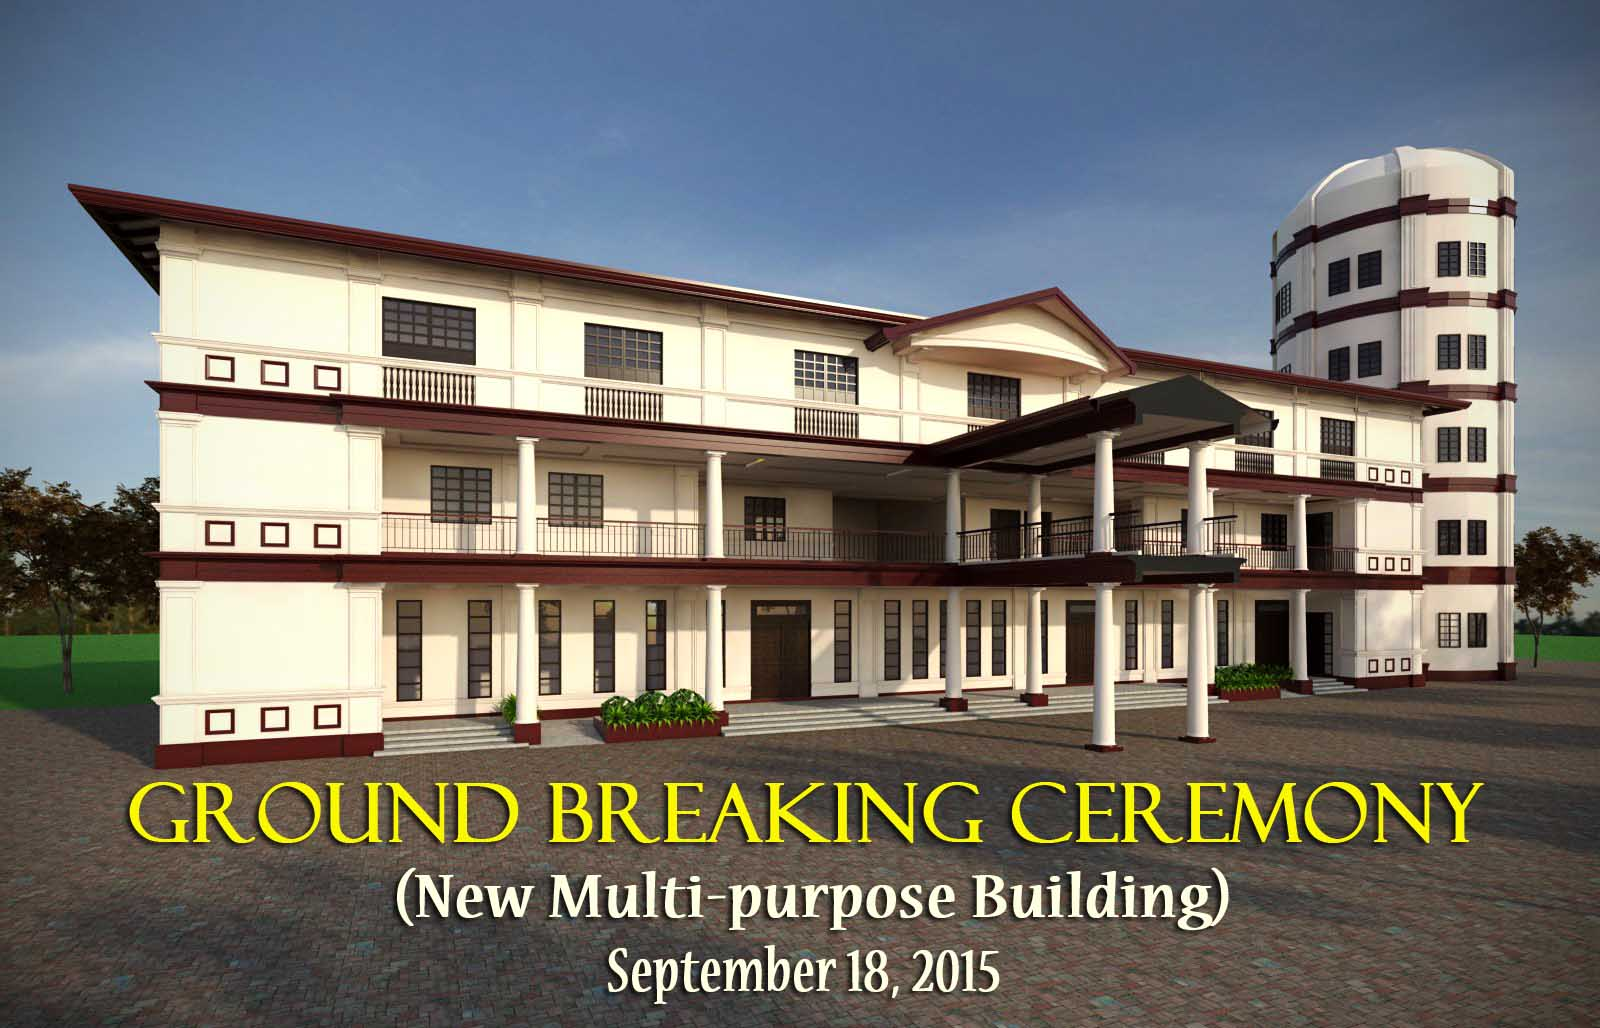 GROUDBREAKING CEREMONY OF THE NEW MULTI-PURPOSE BUILDING